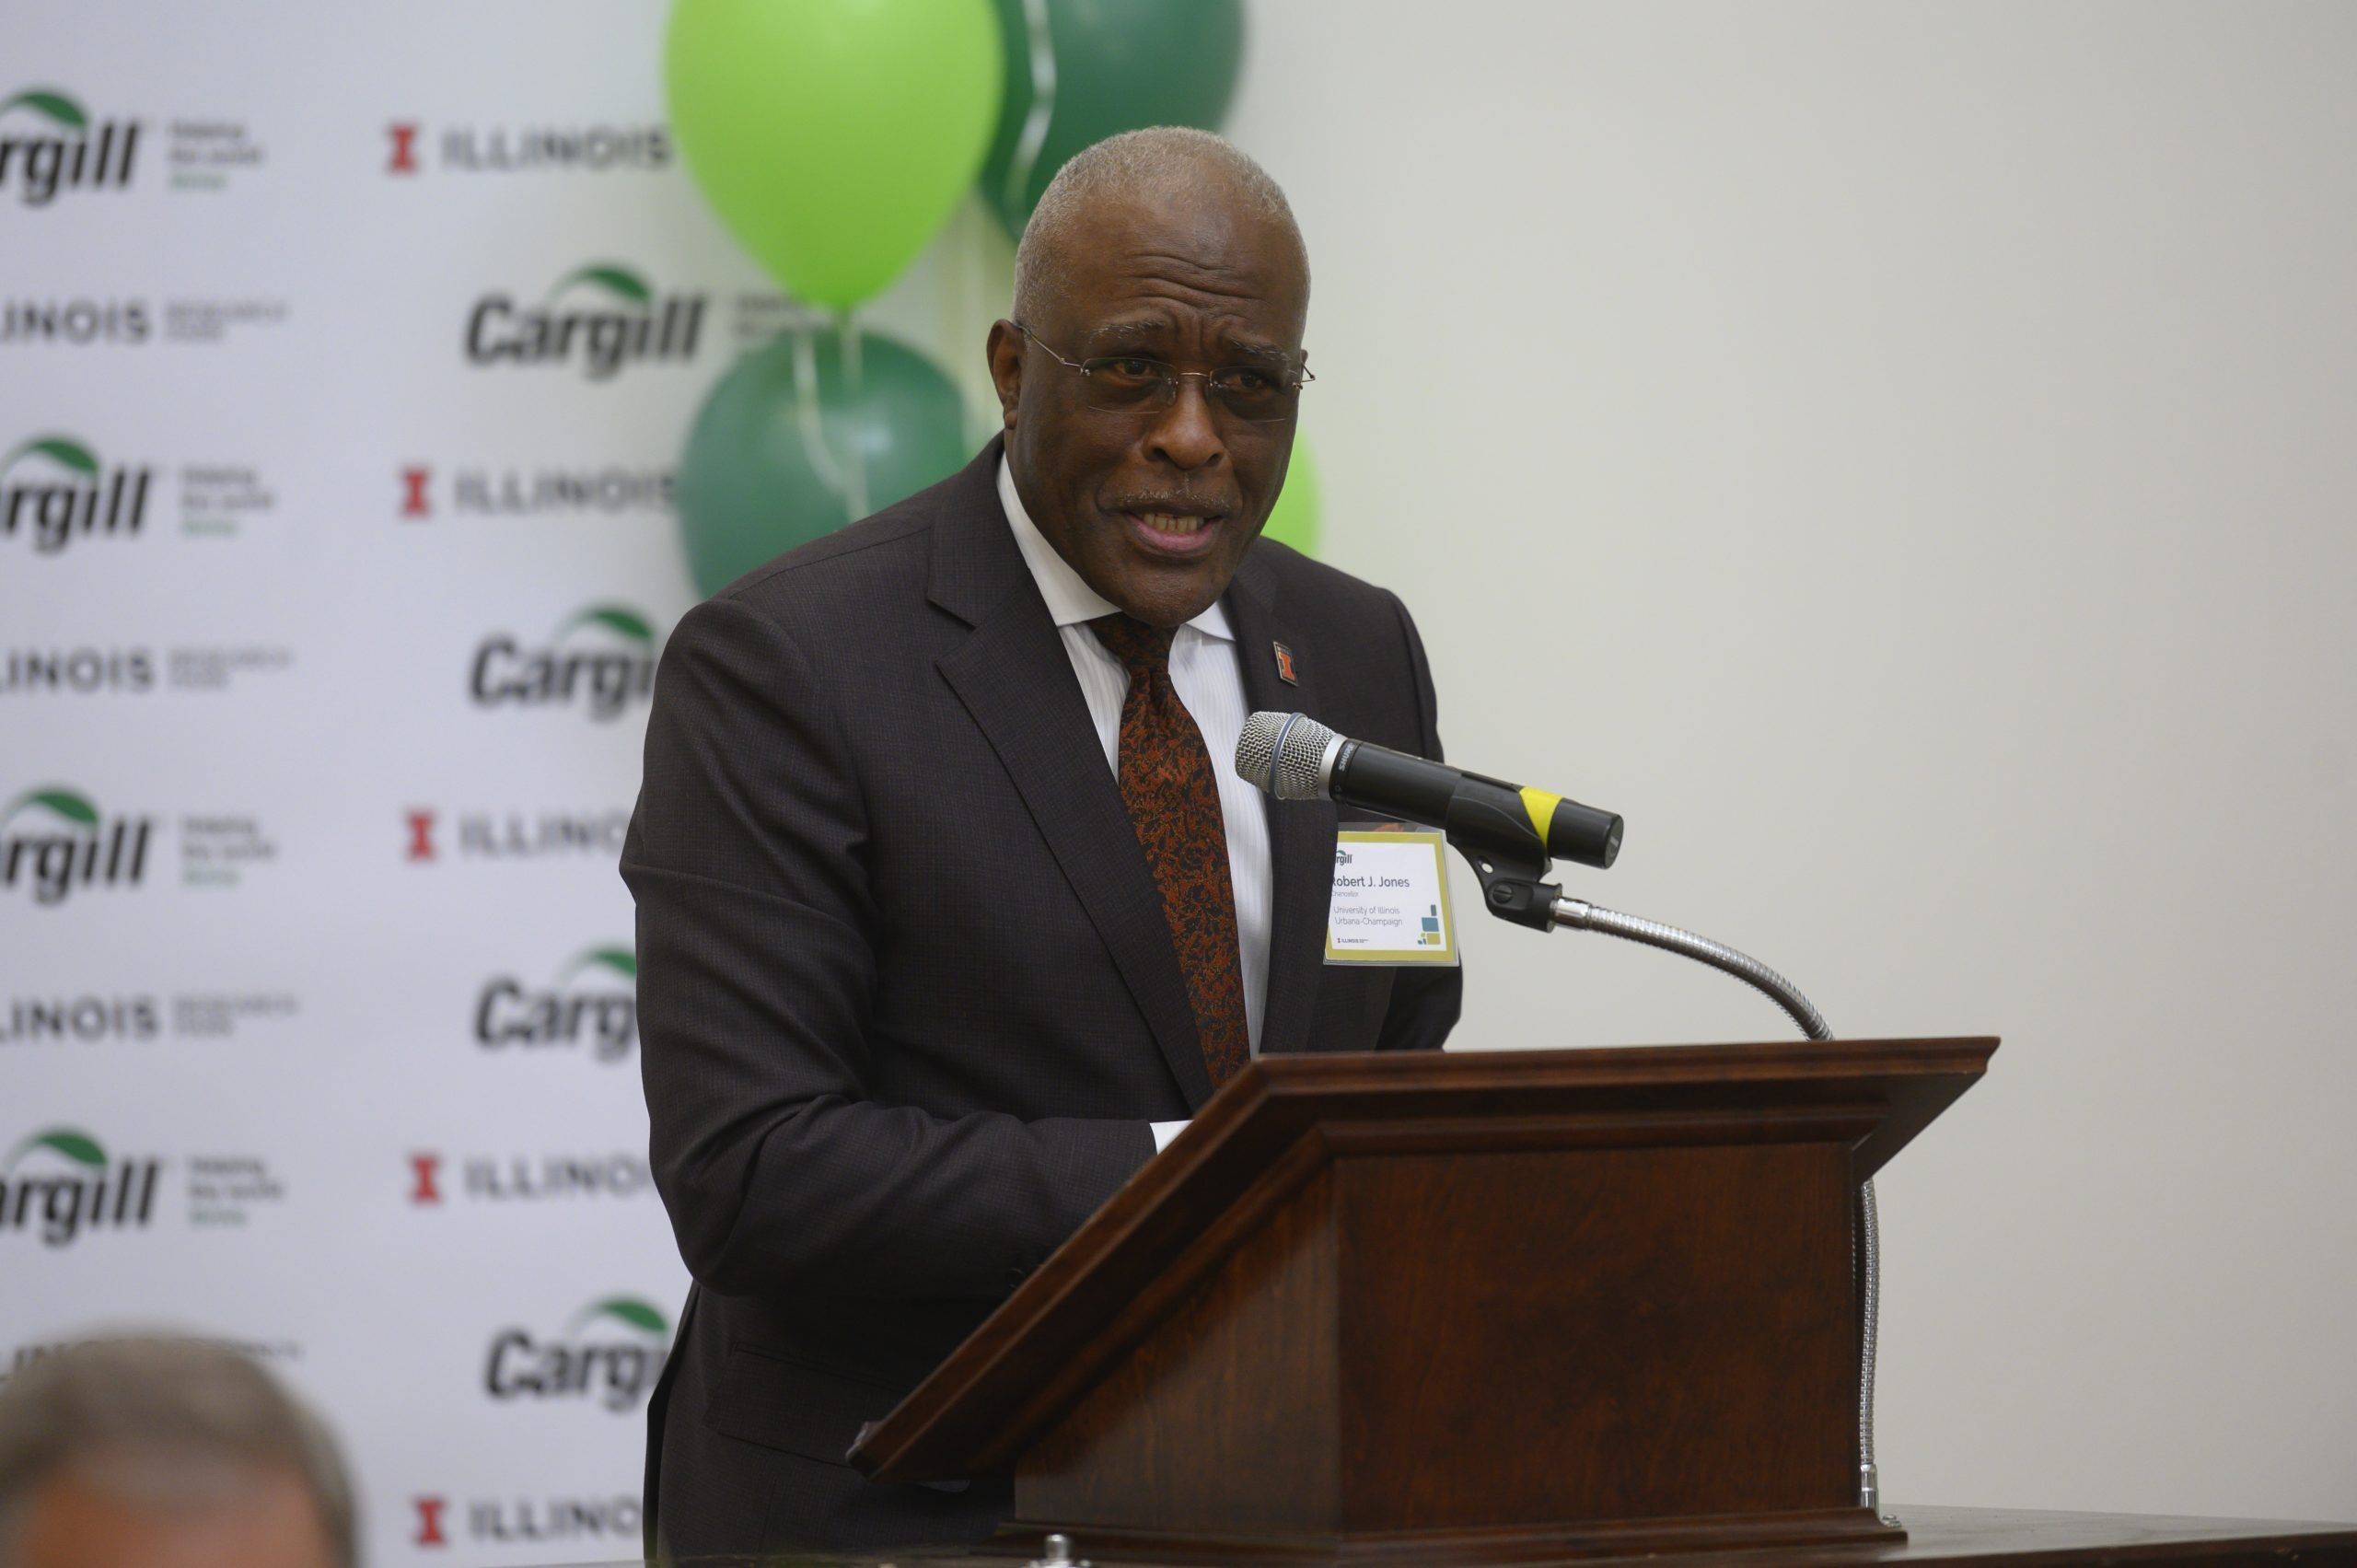 Chancellor Jones speaking at the grand opening